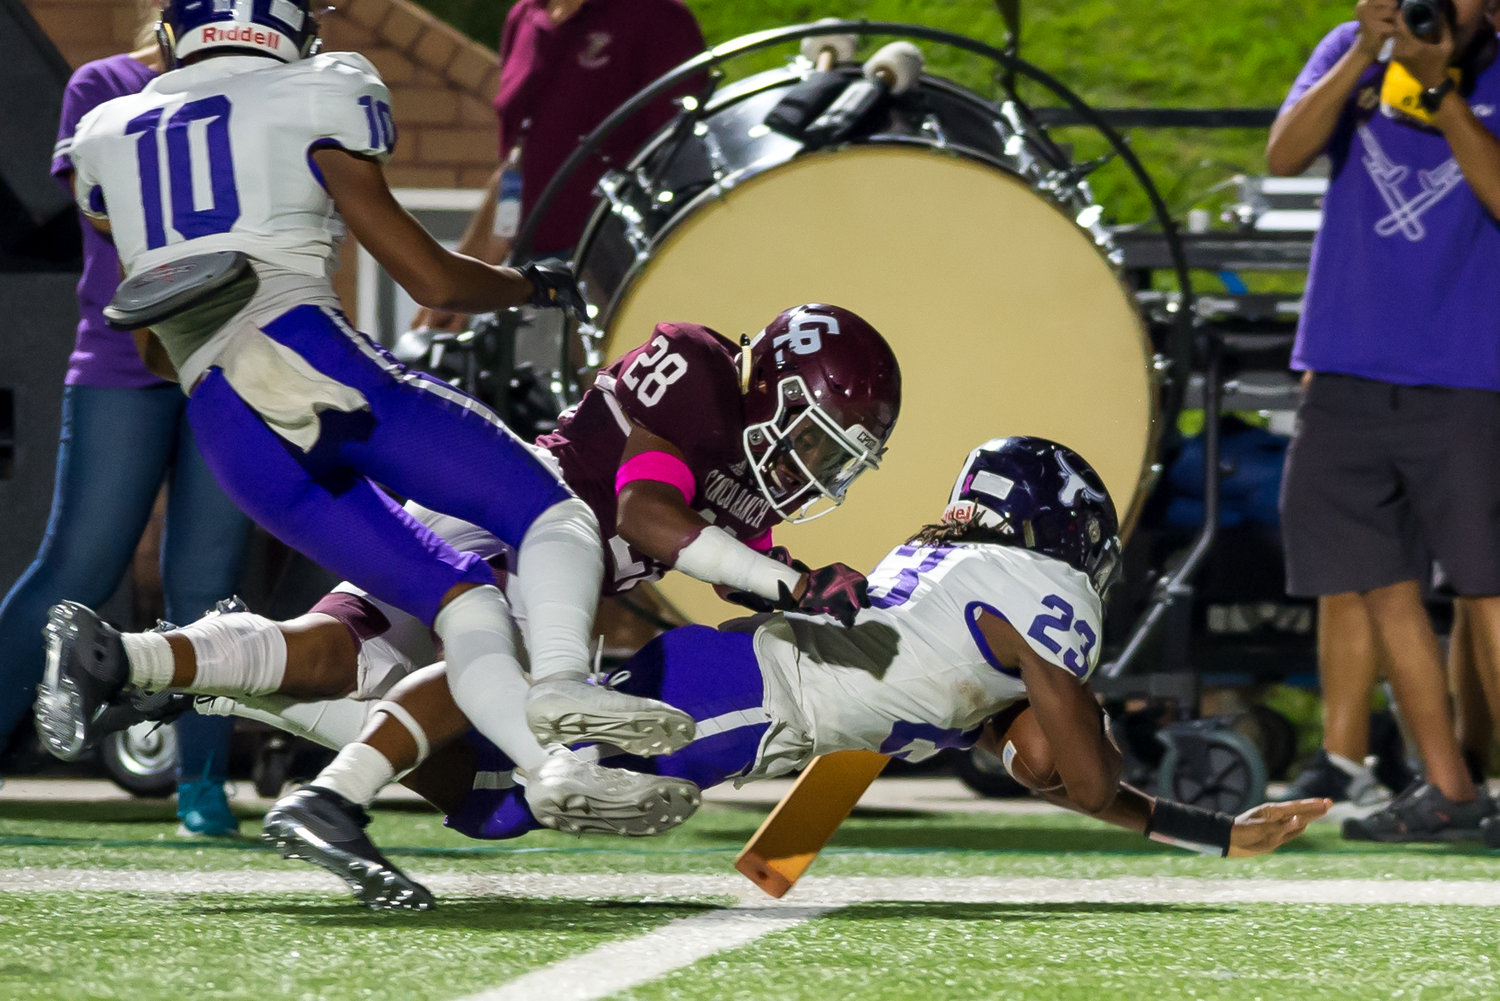 Morton Ranch junior quarterback Jaymarcus Wilson (23) dives for the pylon to score a touchdown during a game against Cinco Ranch on Oct. 4 at Legacy Stadium.